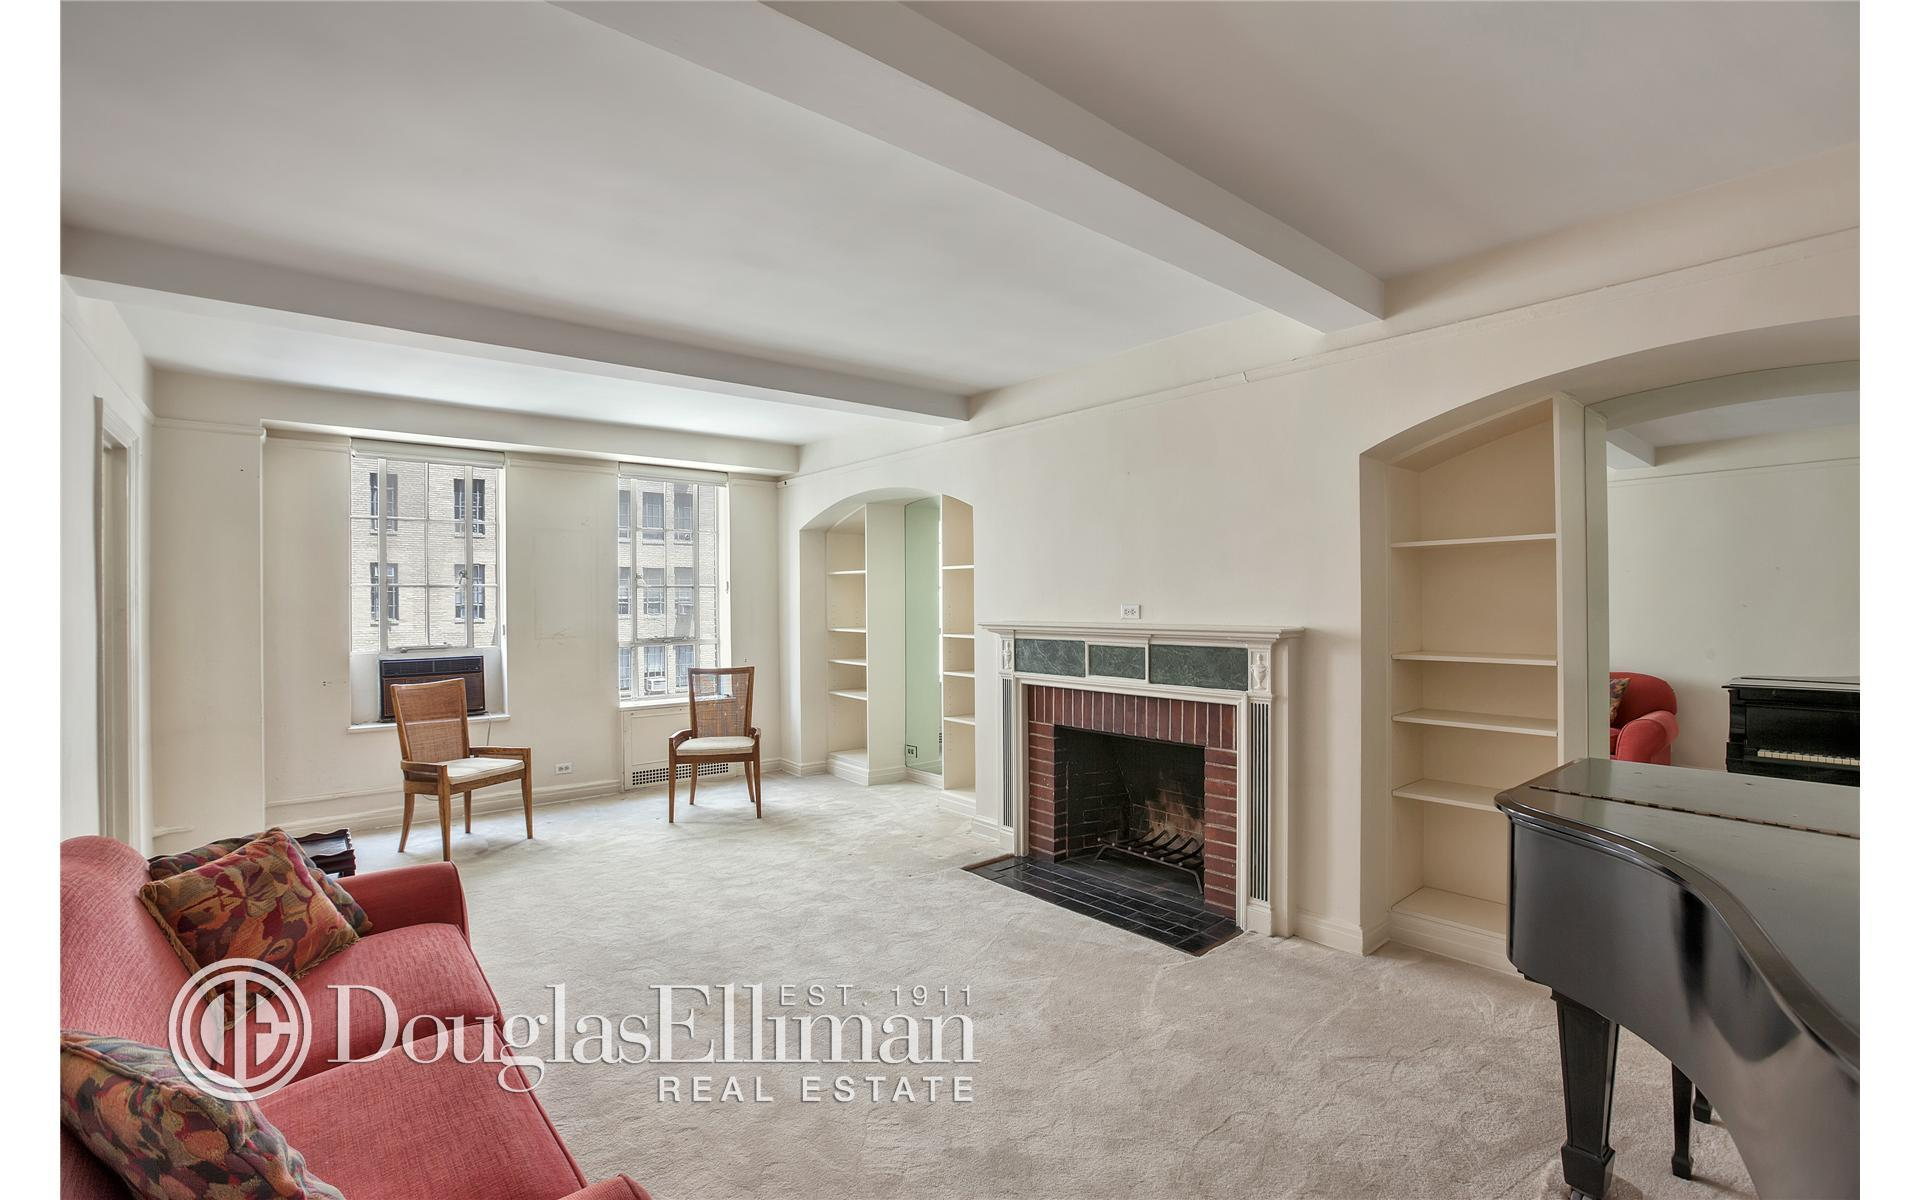 353 W 56th St #7M, New York, NY 10019 - Estimate and Home Details ...